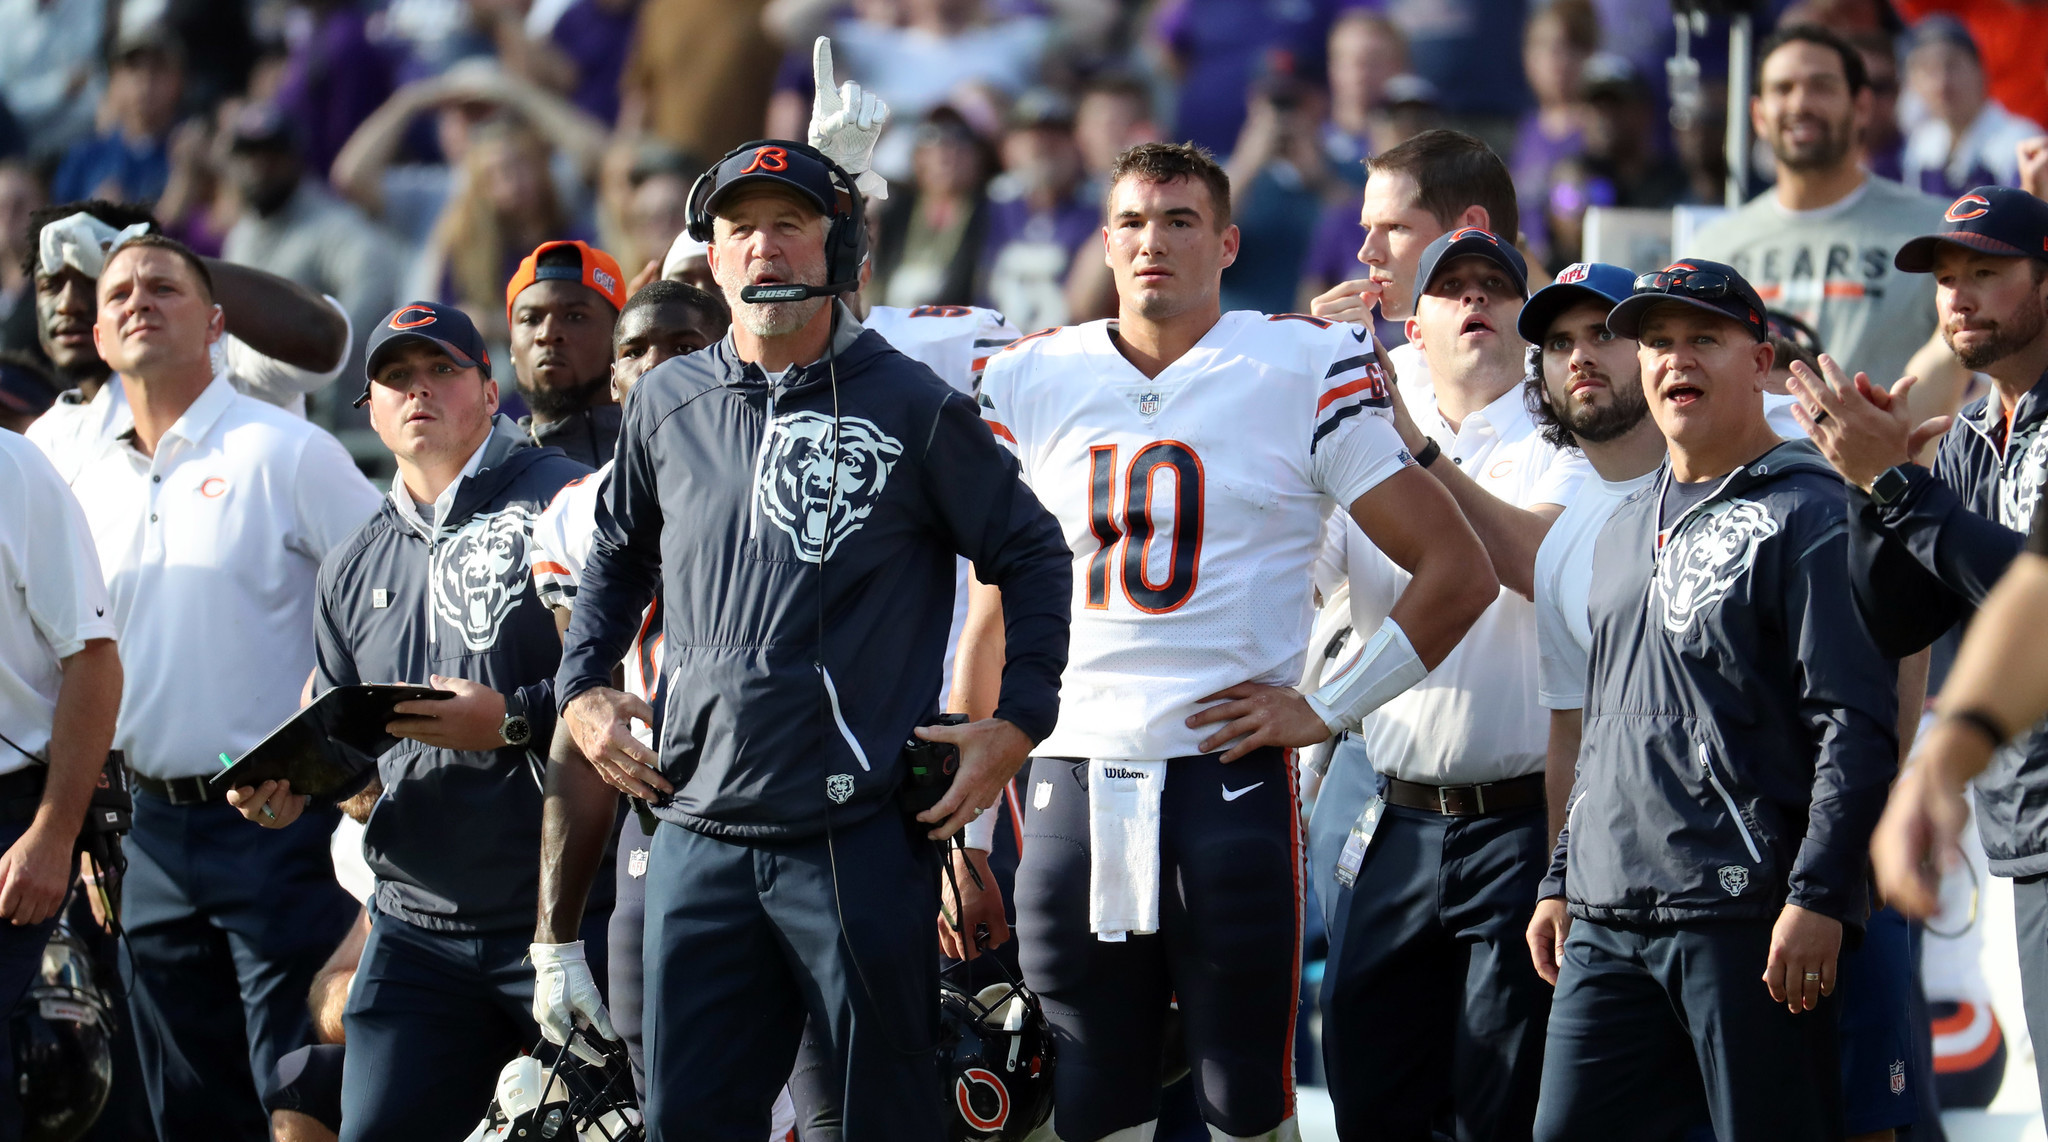 Ct-mitch-trubisky-bears-victory-biggs-spt-1016-20171015